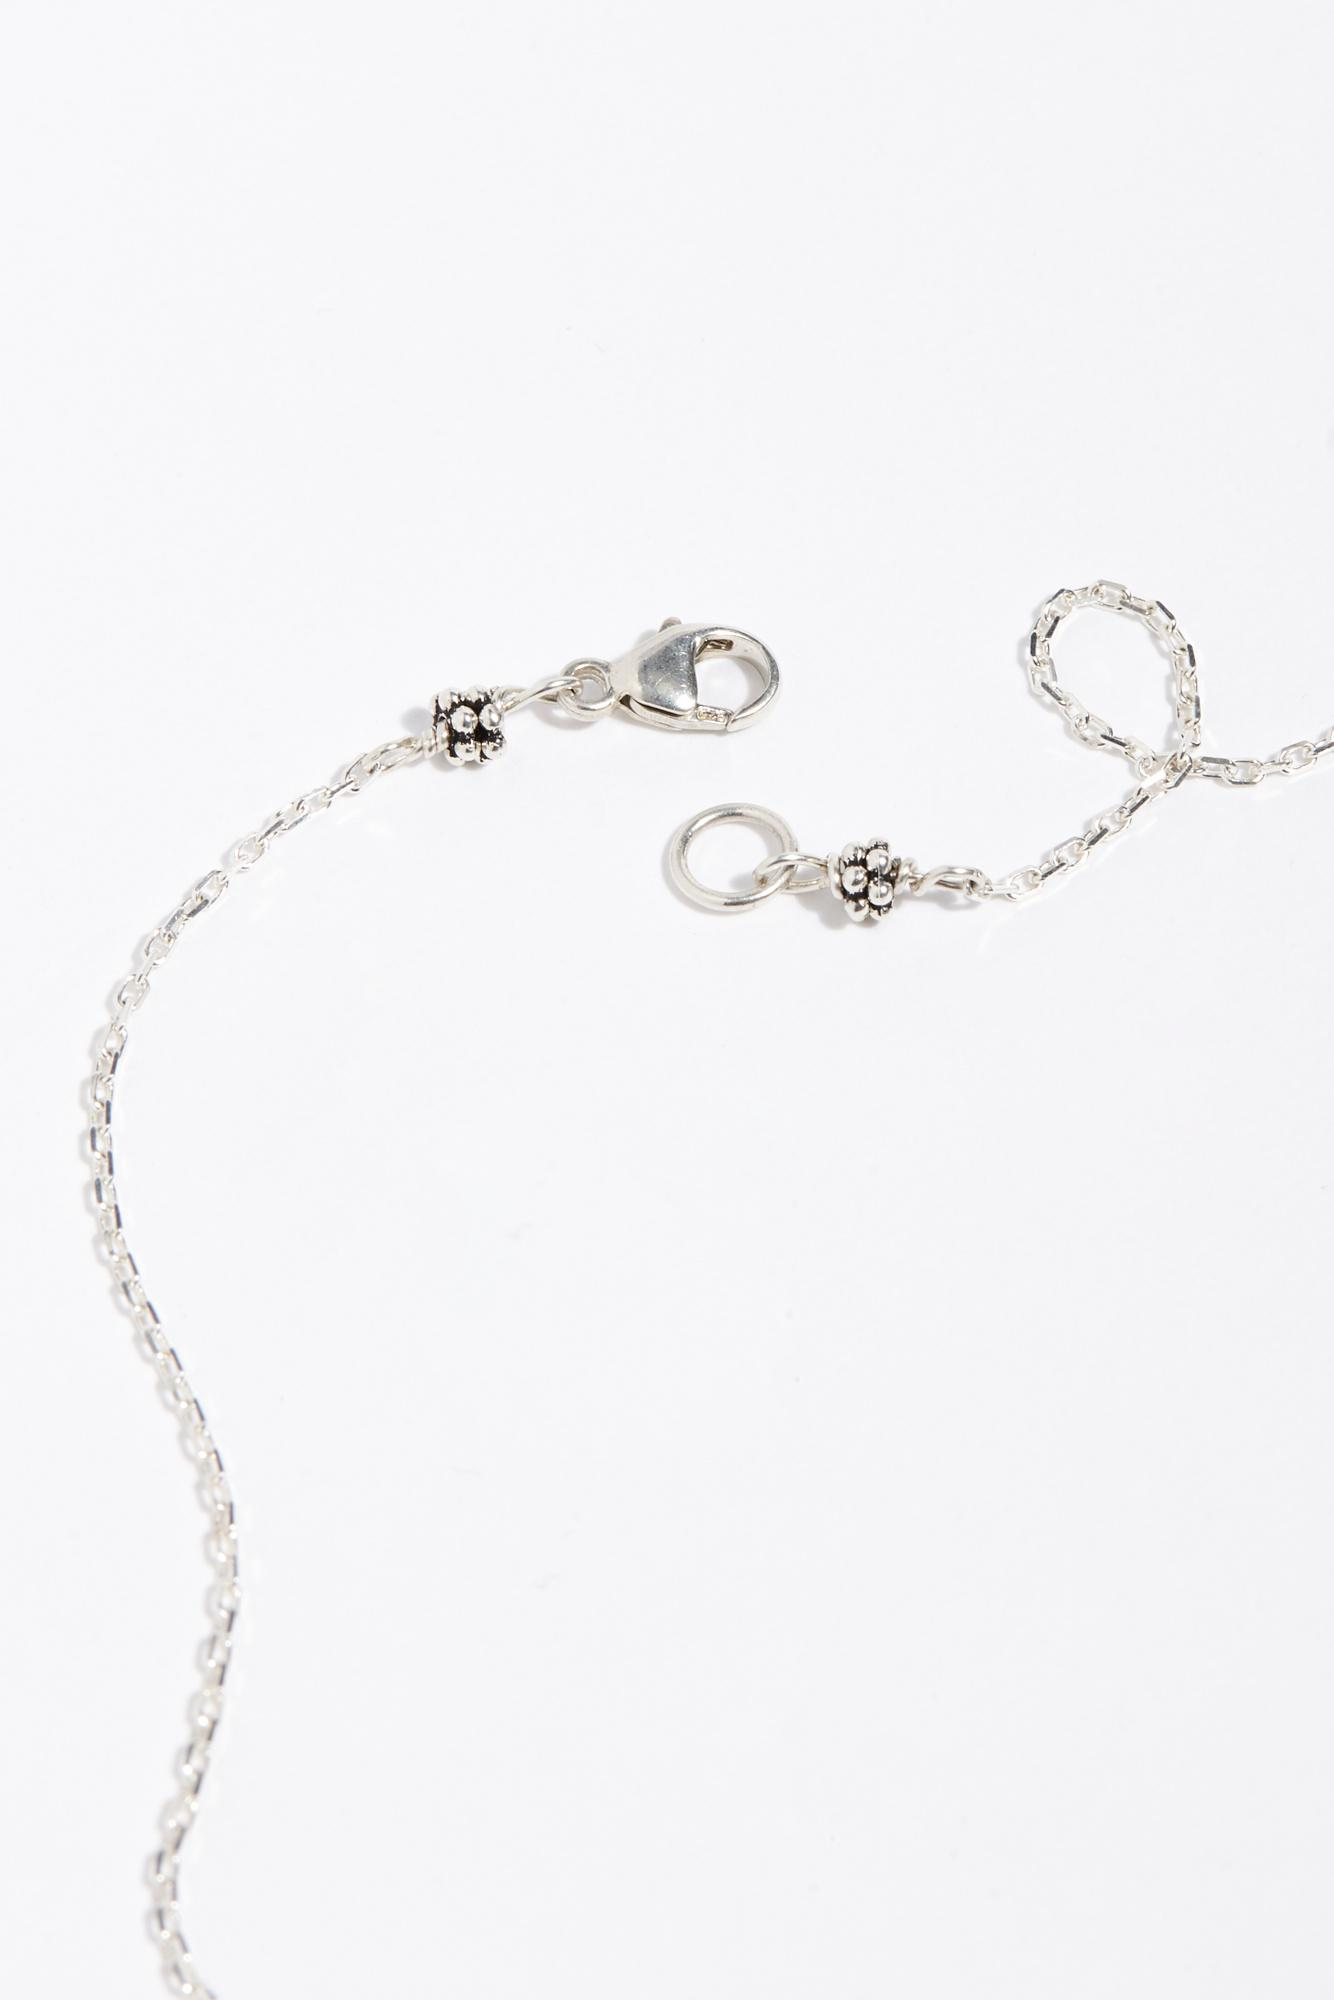 Free People Compass Artifact Charm Necklace By Robin Haley Jewellery in Sterling Silver (Metallic)